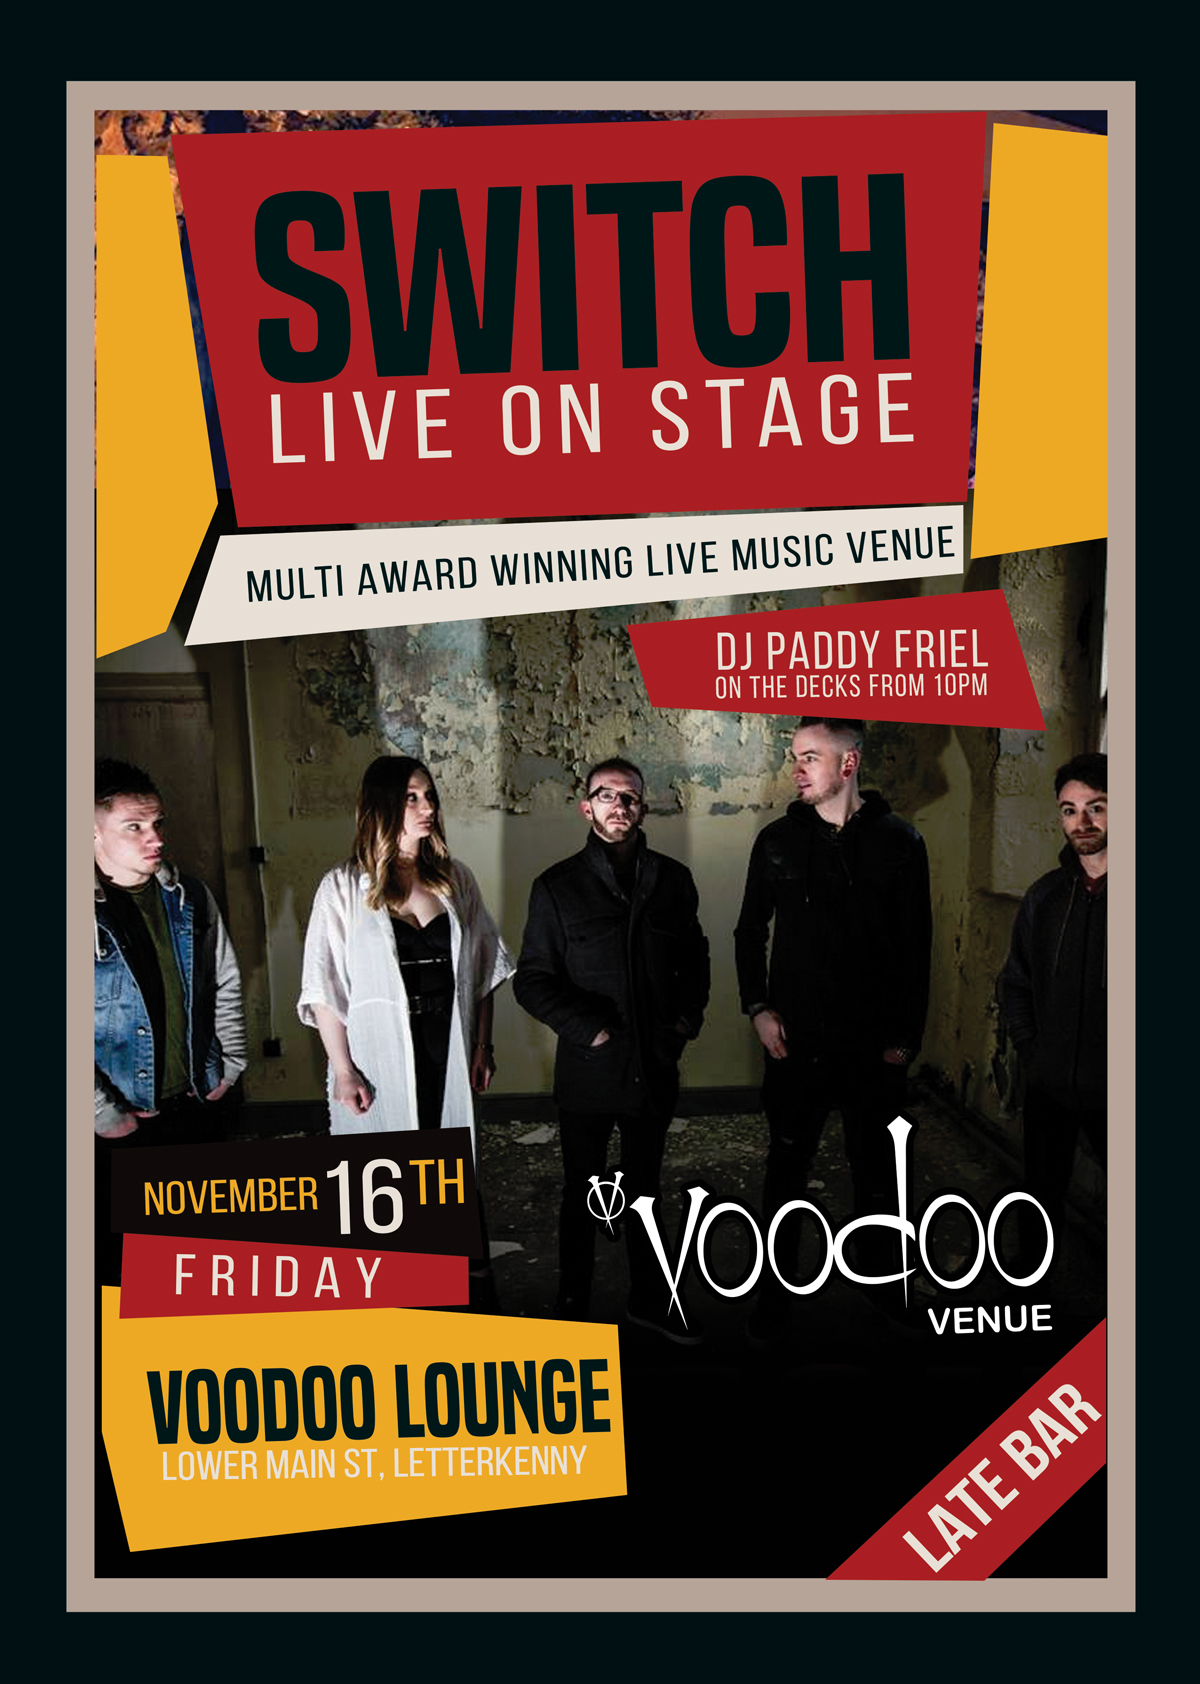 VOODOO-VENUE---switch-fri-nov-16-2018.jpg